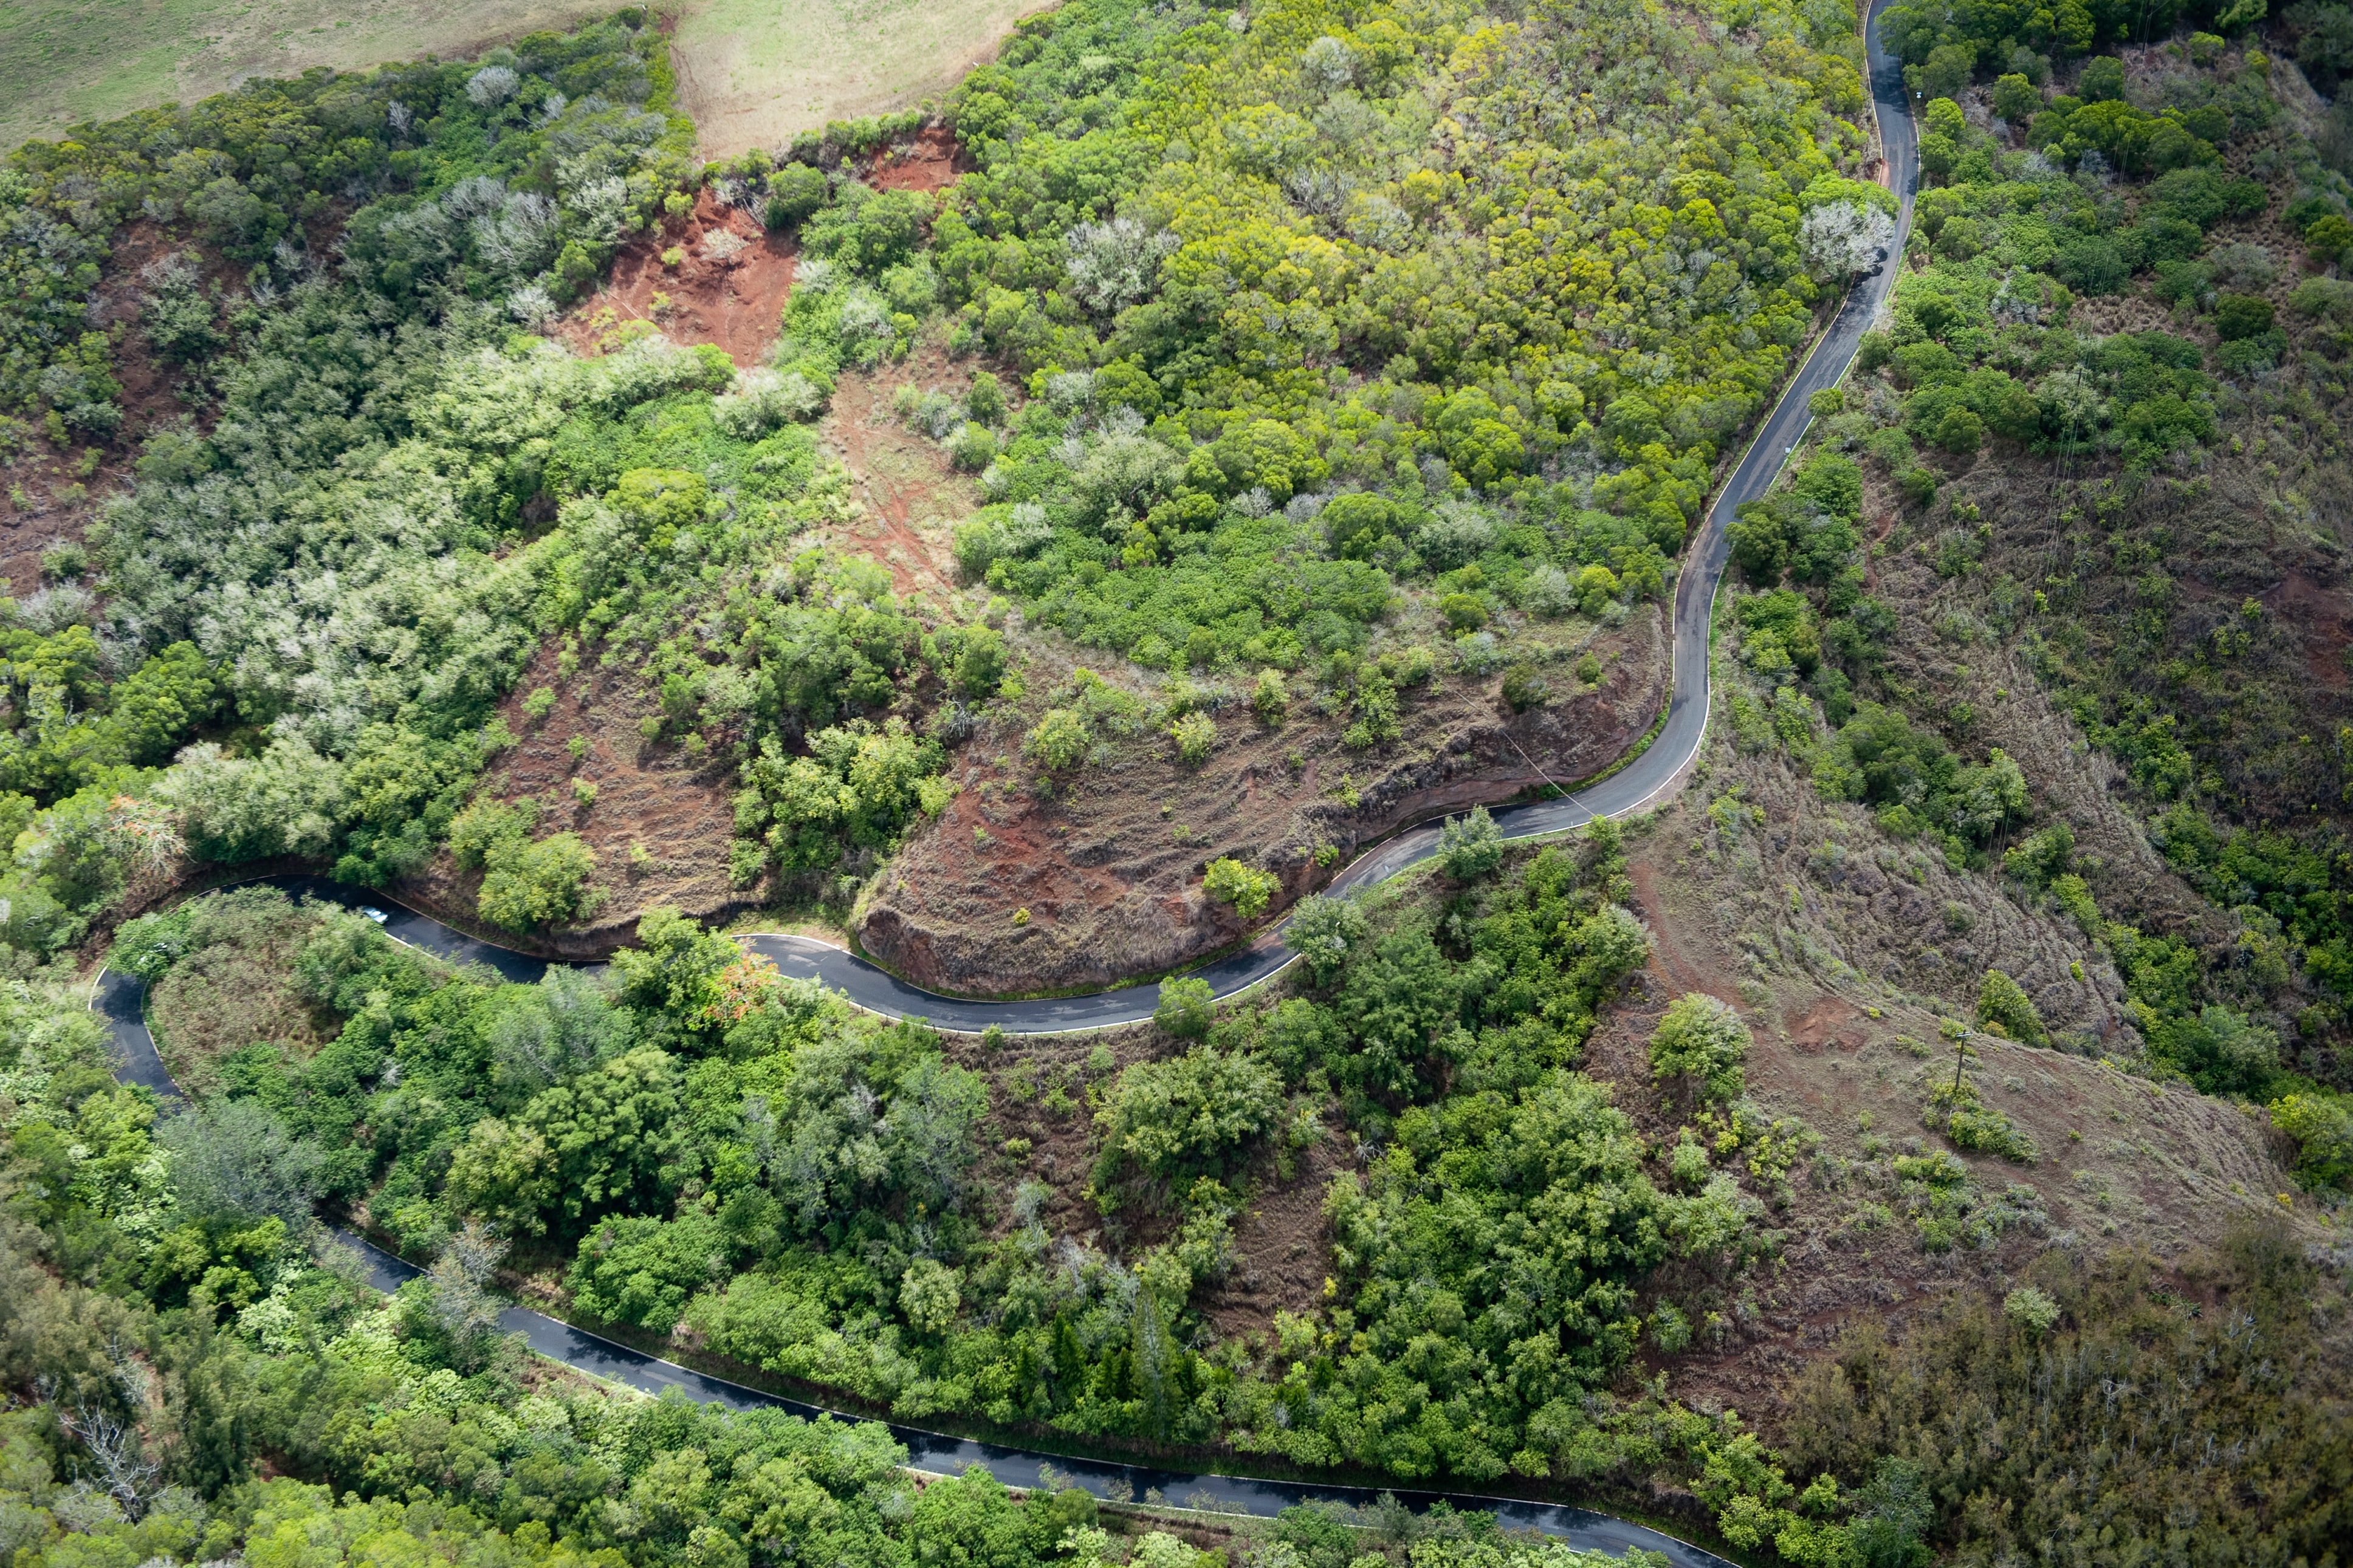 A drone shot of a winding road along a wooded red rock slope